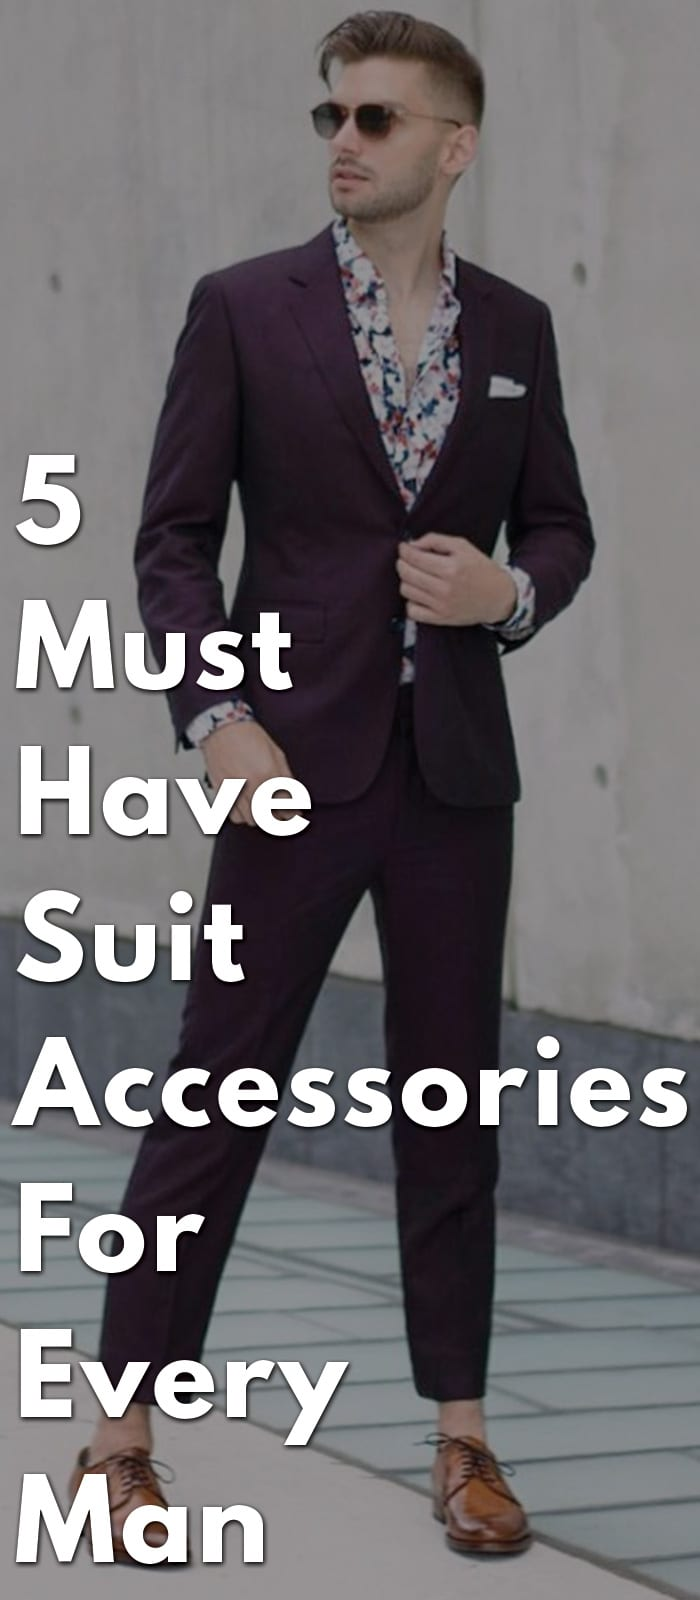 5-Must-Have-Suit-Accessories-for-Every-Man